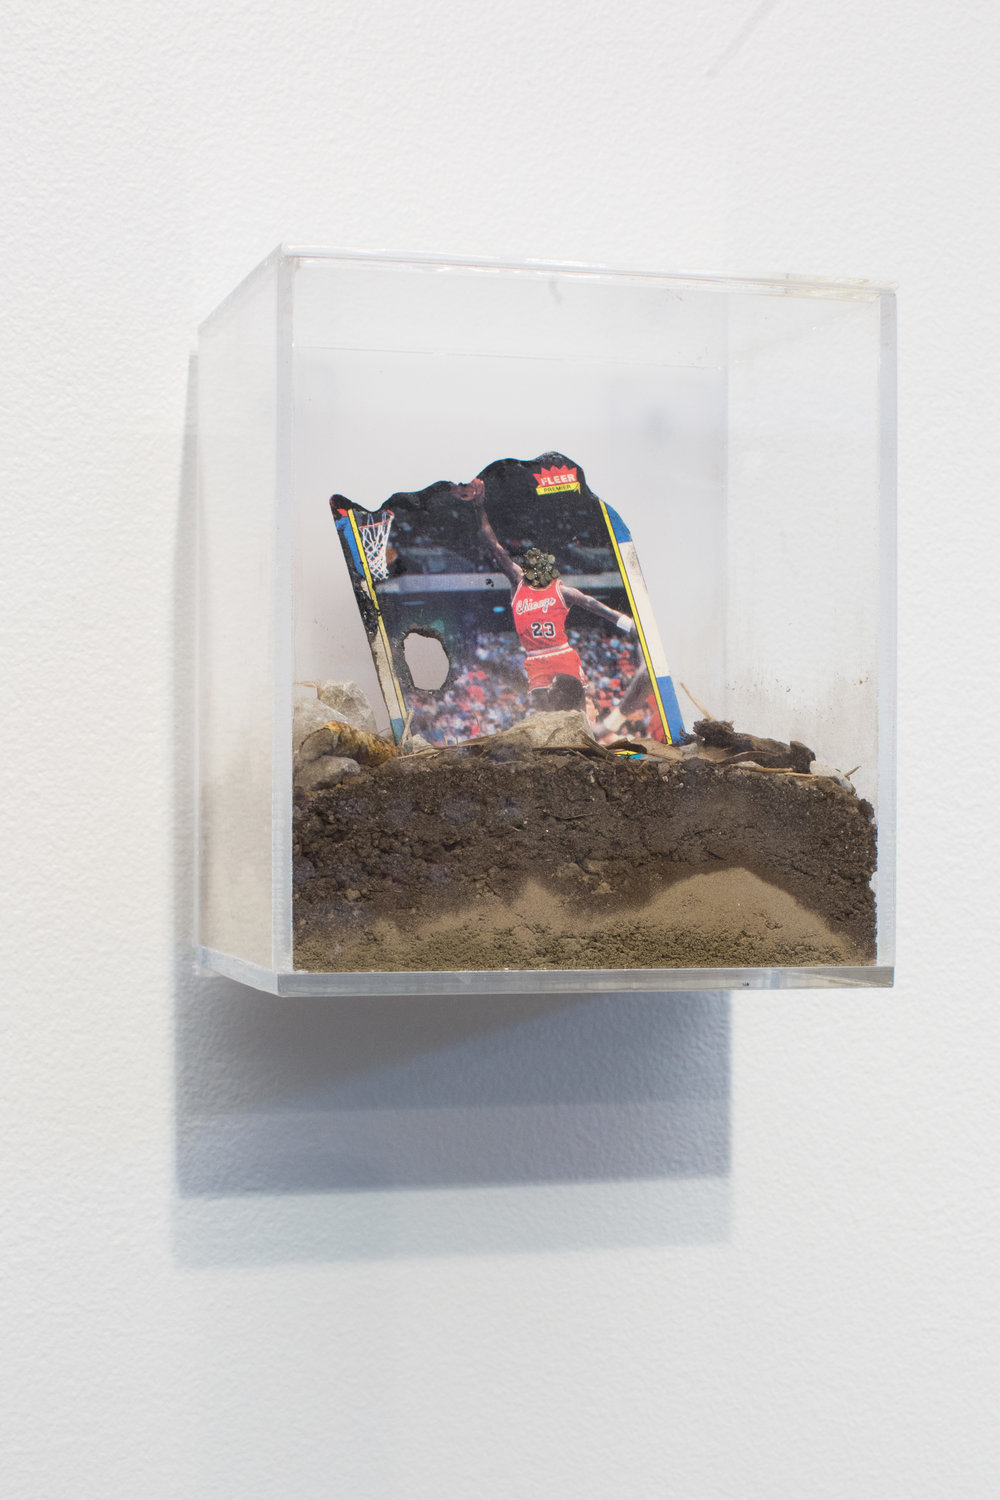 Jordan Weber.    King Leopold II  , 2015.  Moon Rocks, Michael Jordan rookie card, soils from sites in Ferguson, MO; Charleston, SC; site of Custer's Last Stand, Eastern Montana; slave plantation, Tennessee; and site of Wounded Knee Massacre, Lakota Pine Ridge Reservation, SD